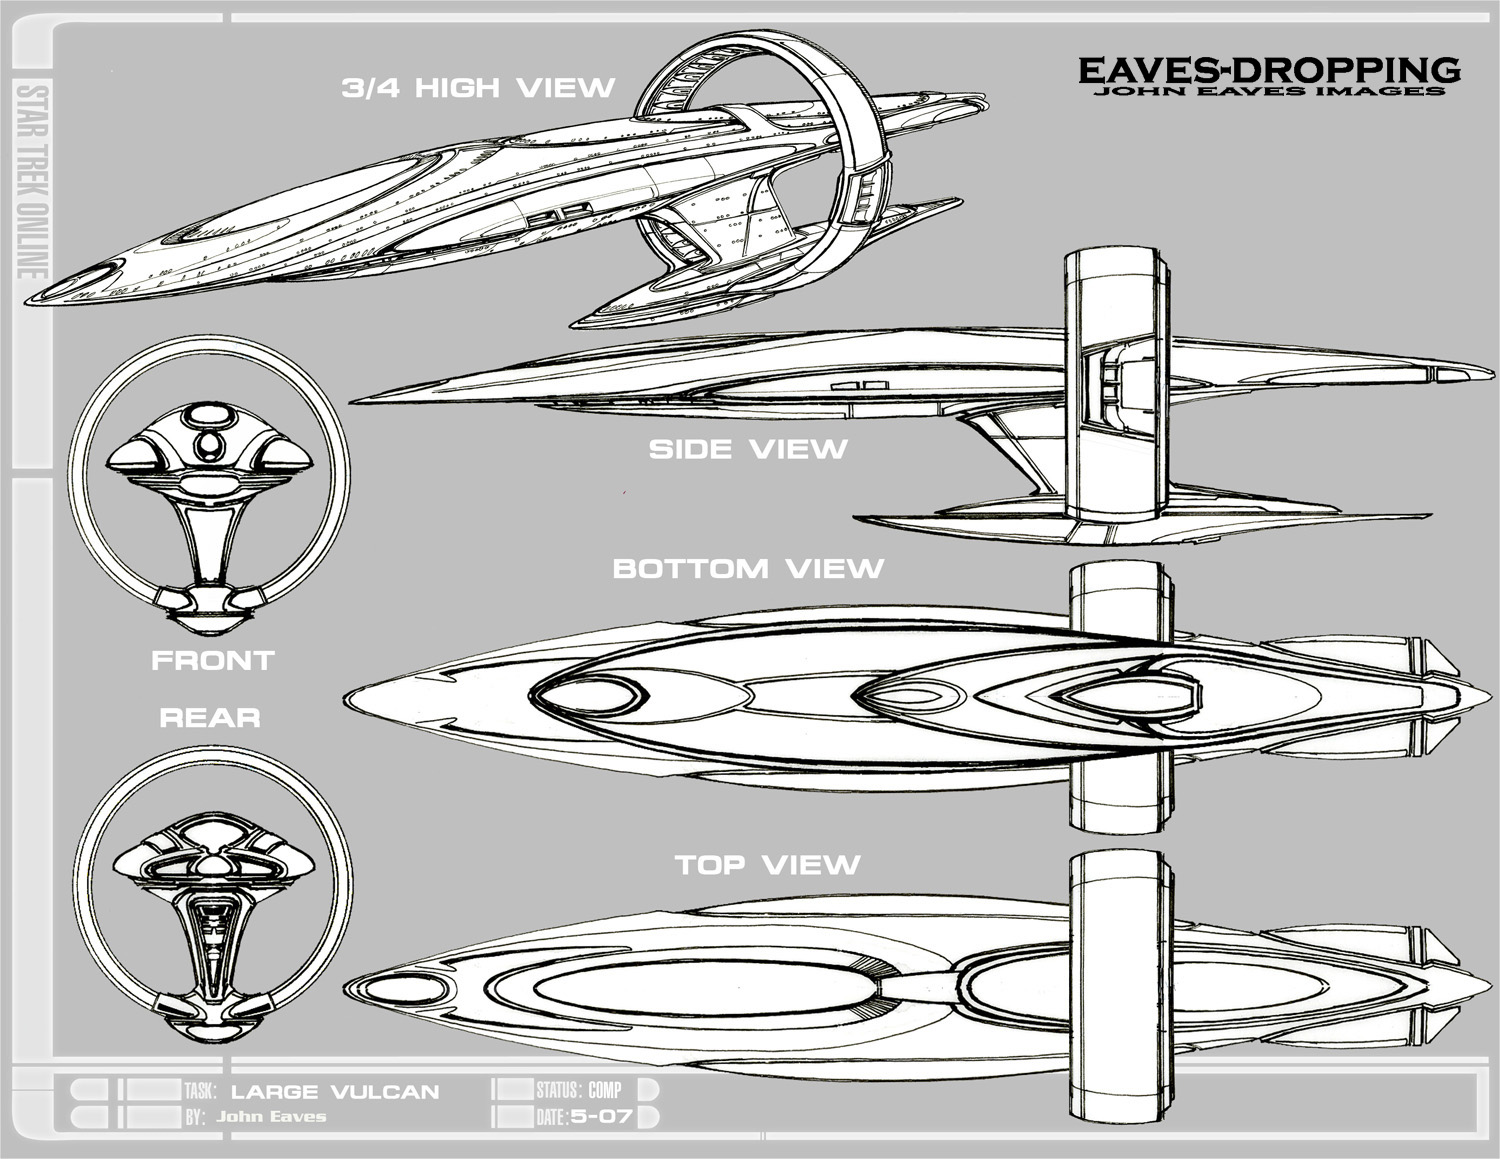 More Vulcans From The Perpetual Files